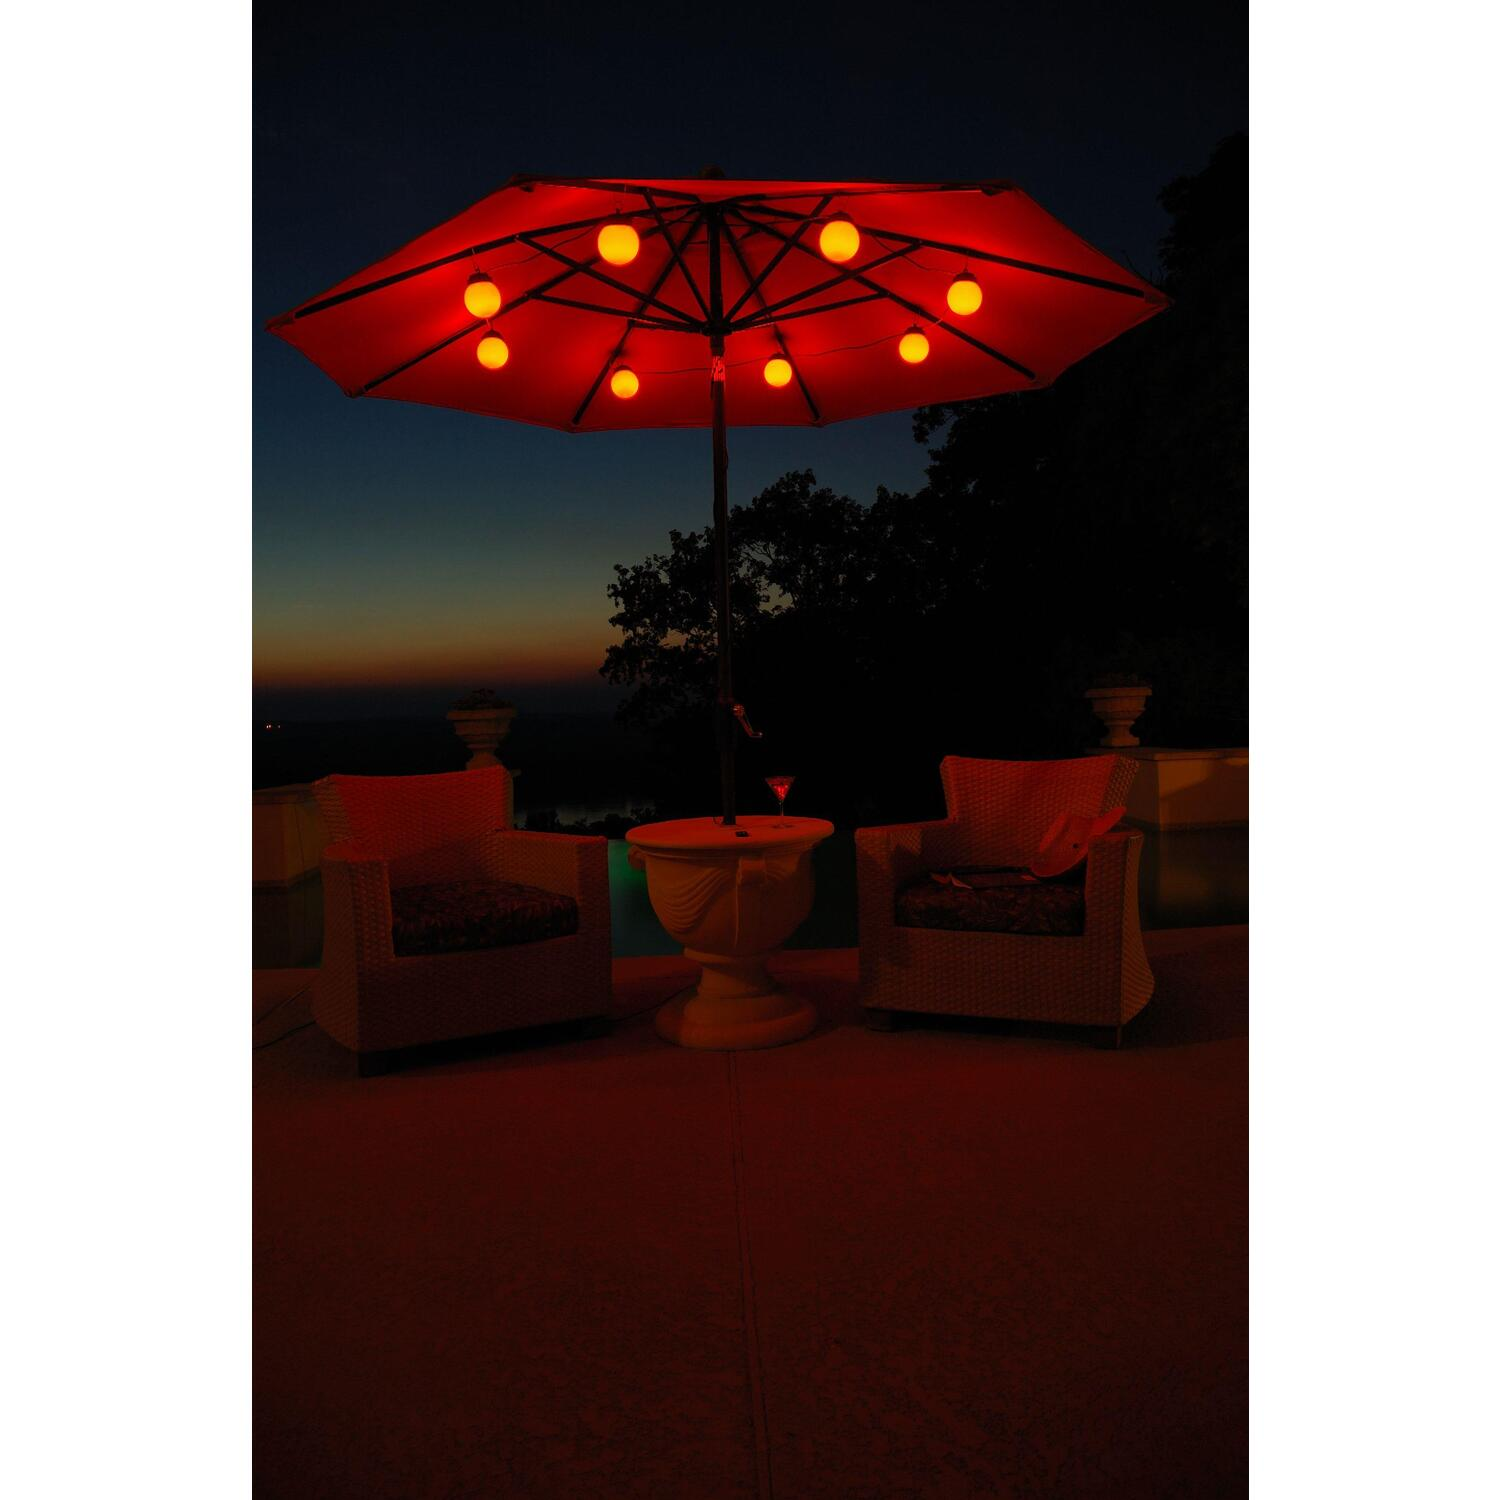 Patio Living Concepts Globe Umbrella Lights by OJ Commerce USD 104.00 - USD 190.00